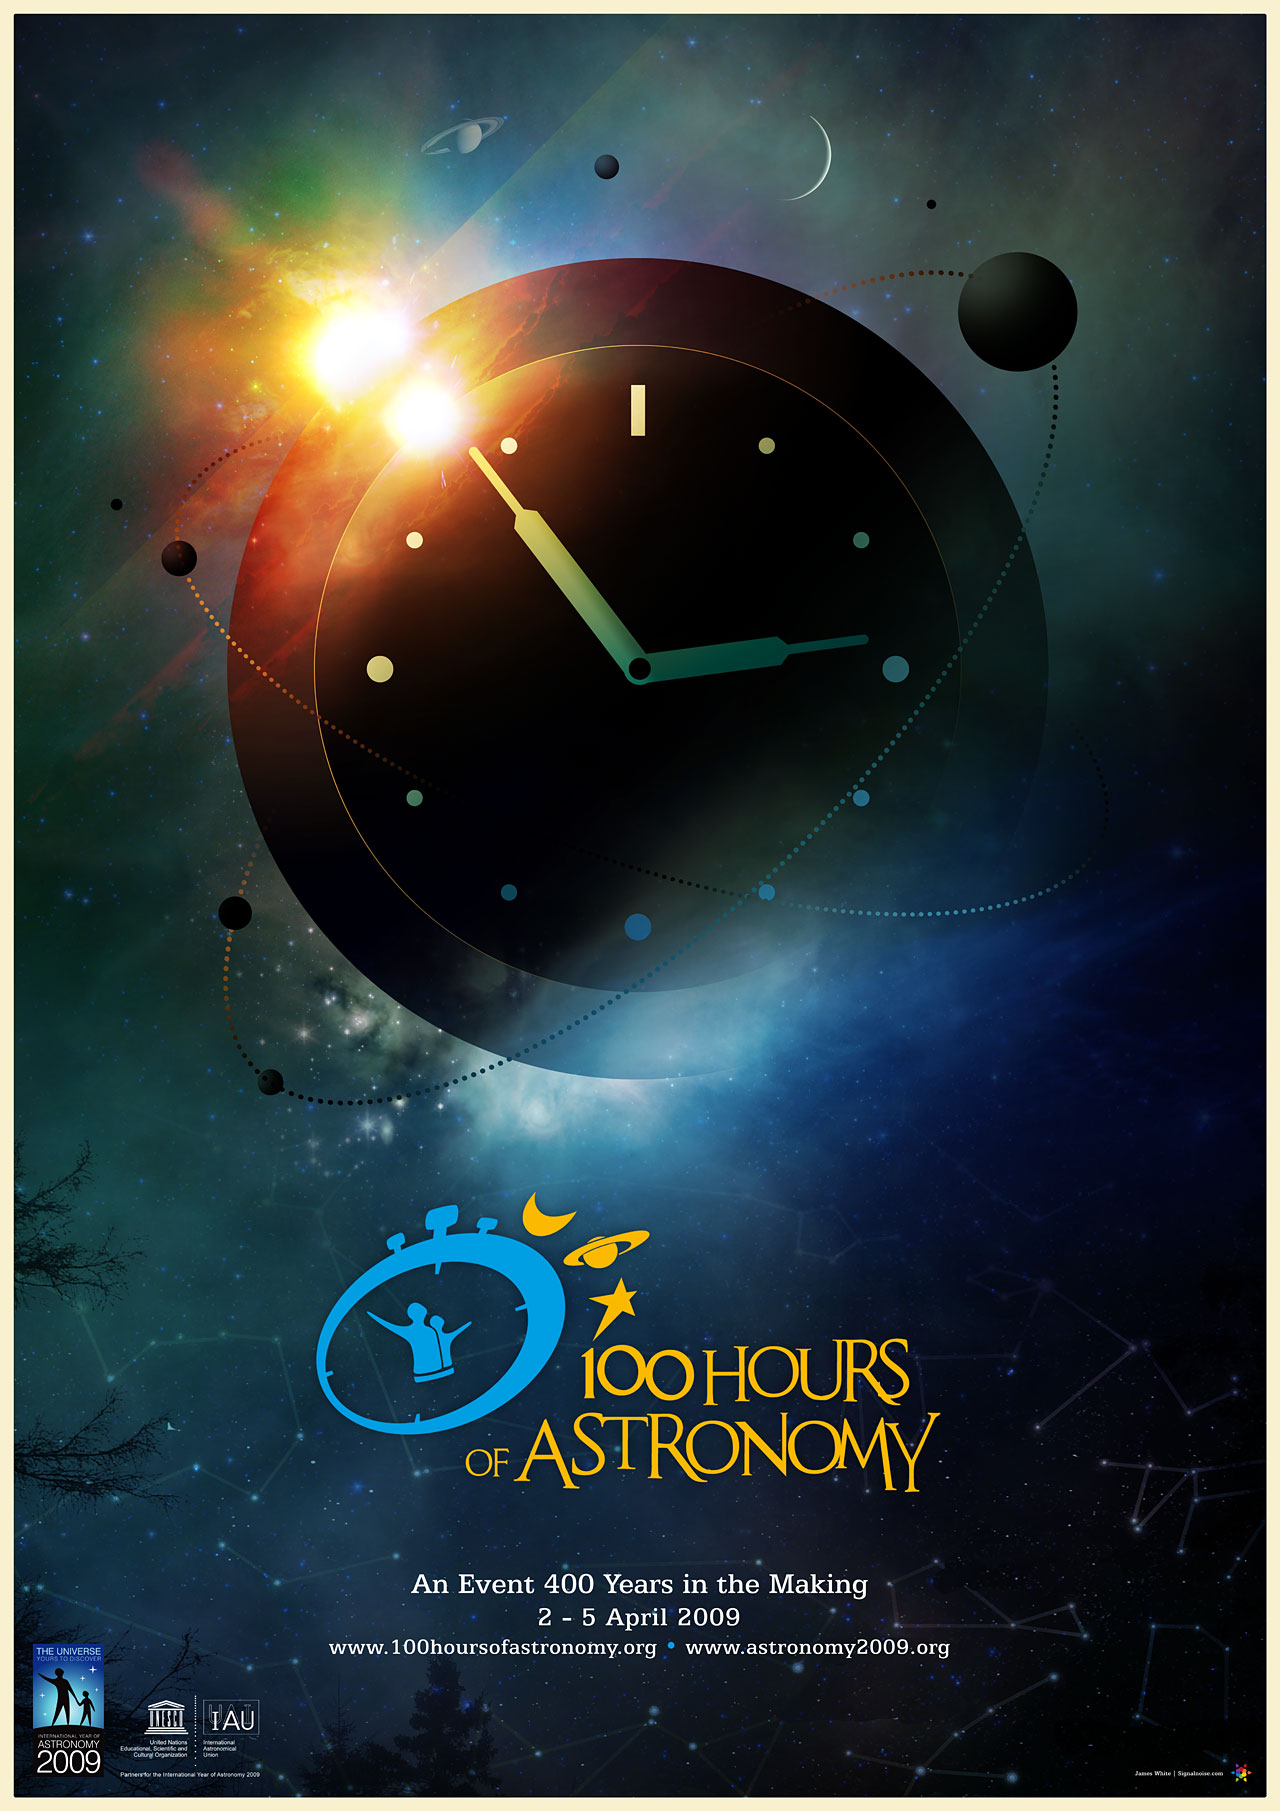 100 Hours of Astronomy Poster | Astronomy 2009